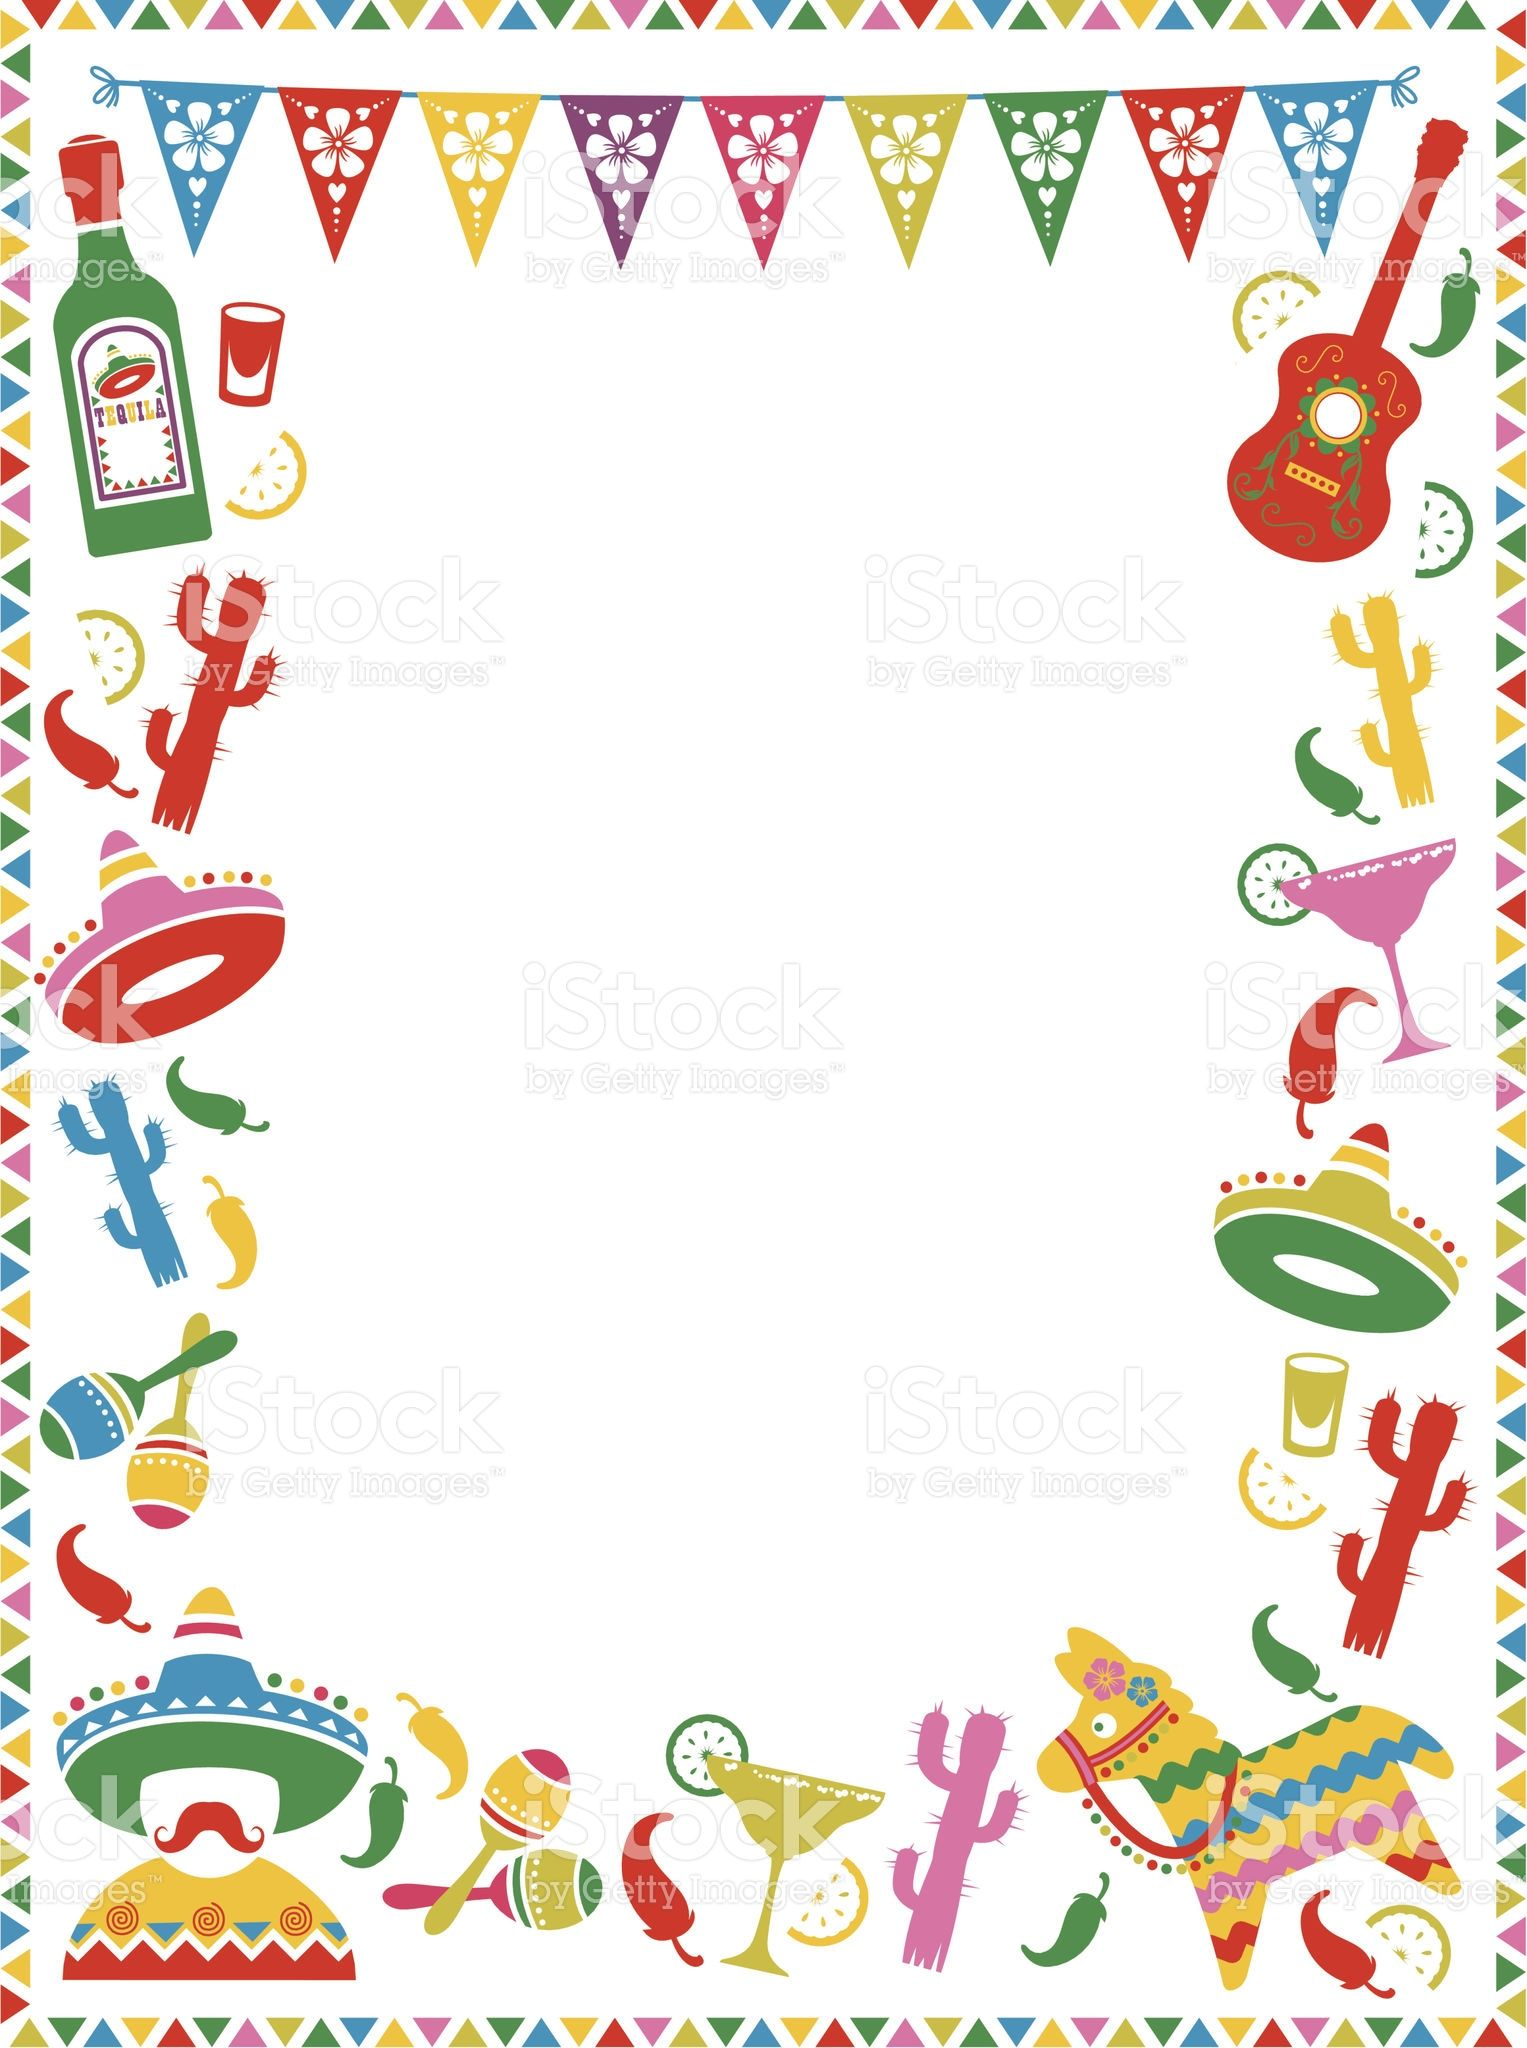 A Mexican themed border. Ideal for menus or party invites.